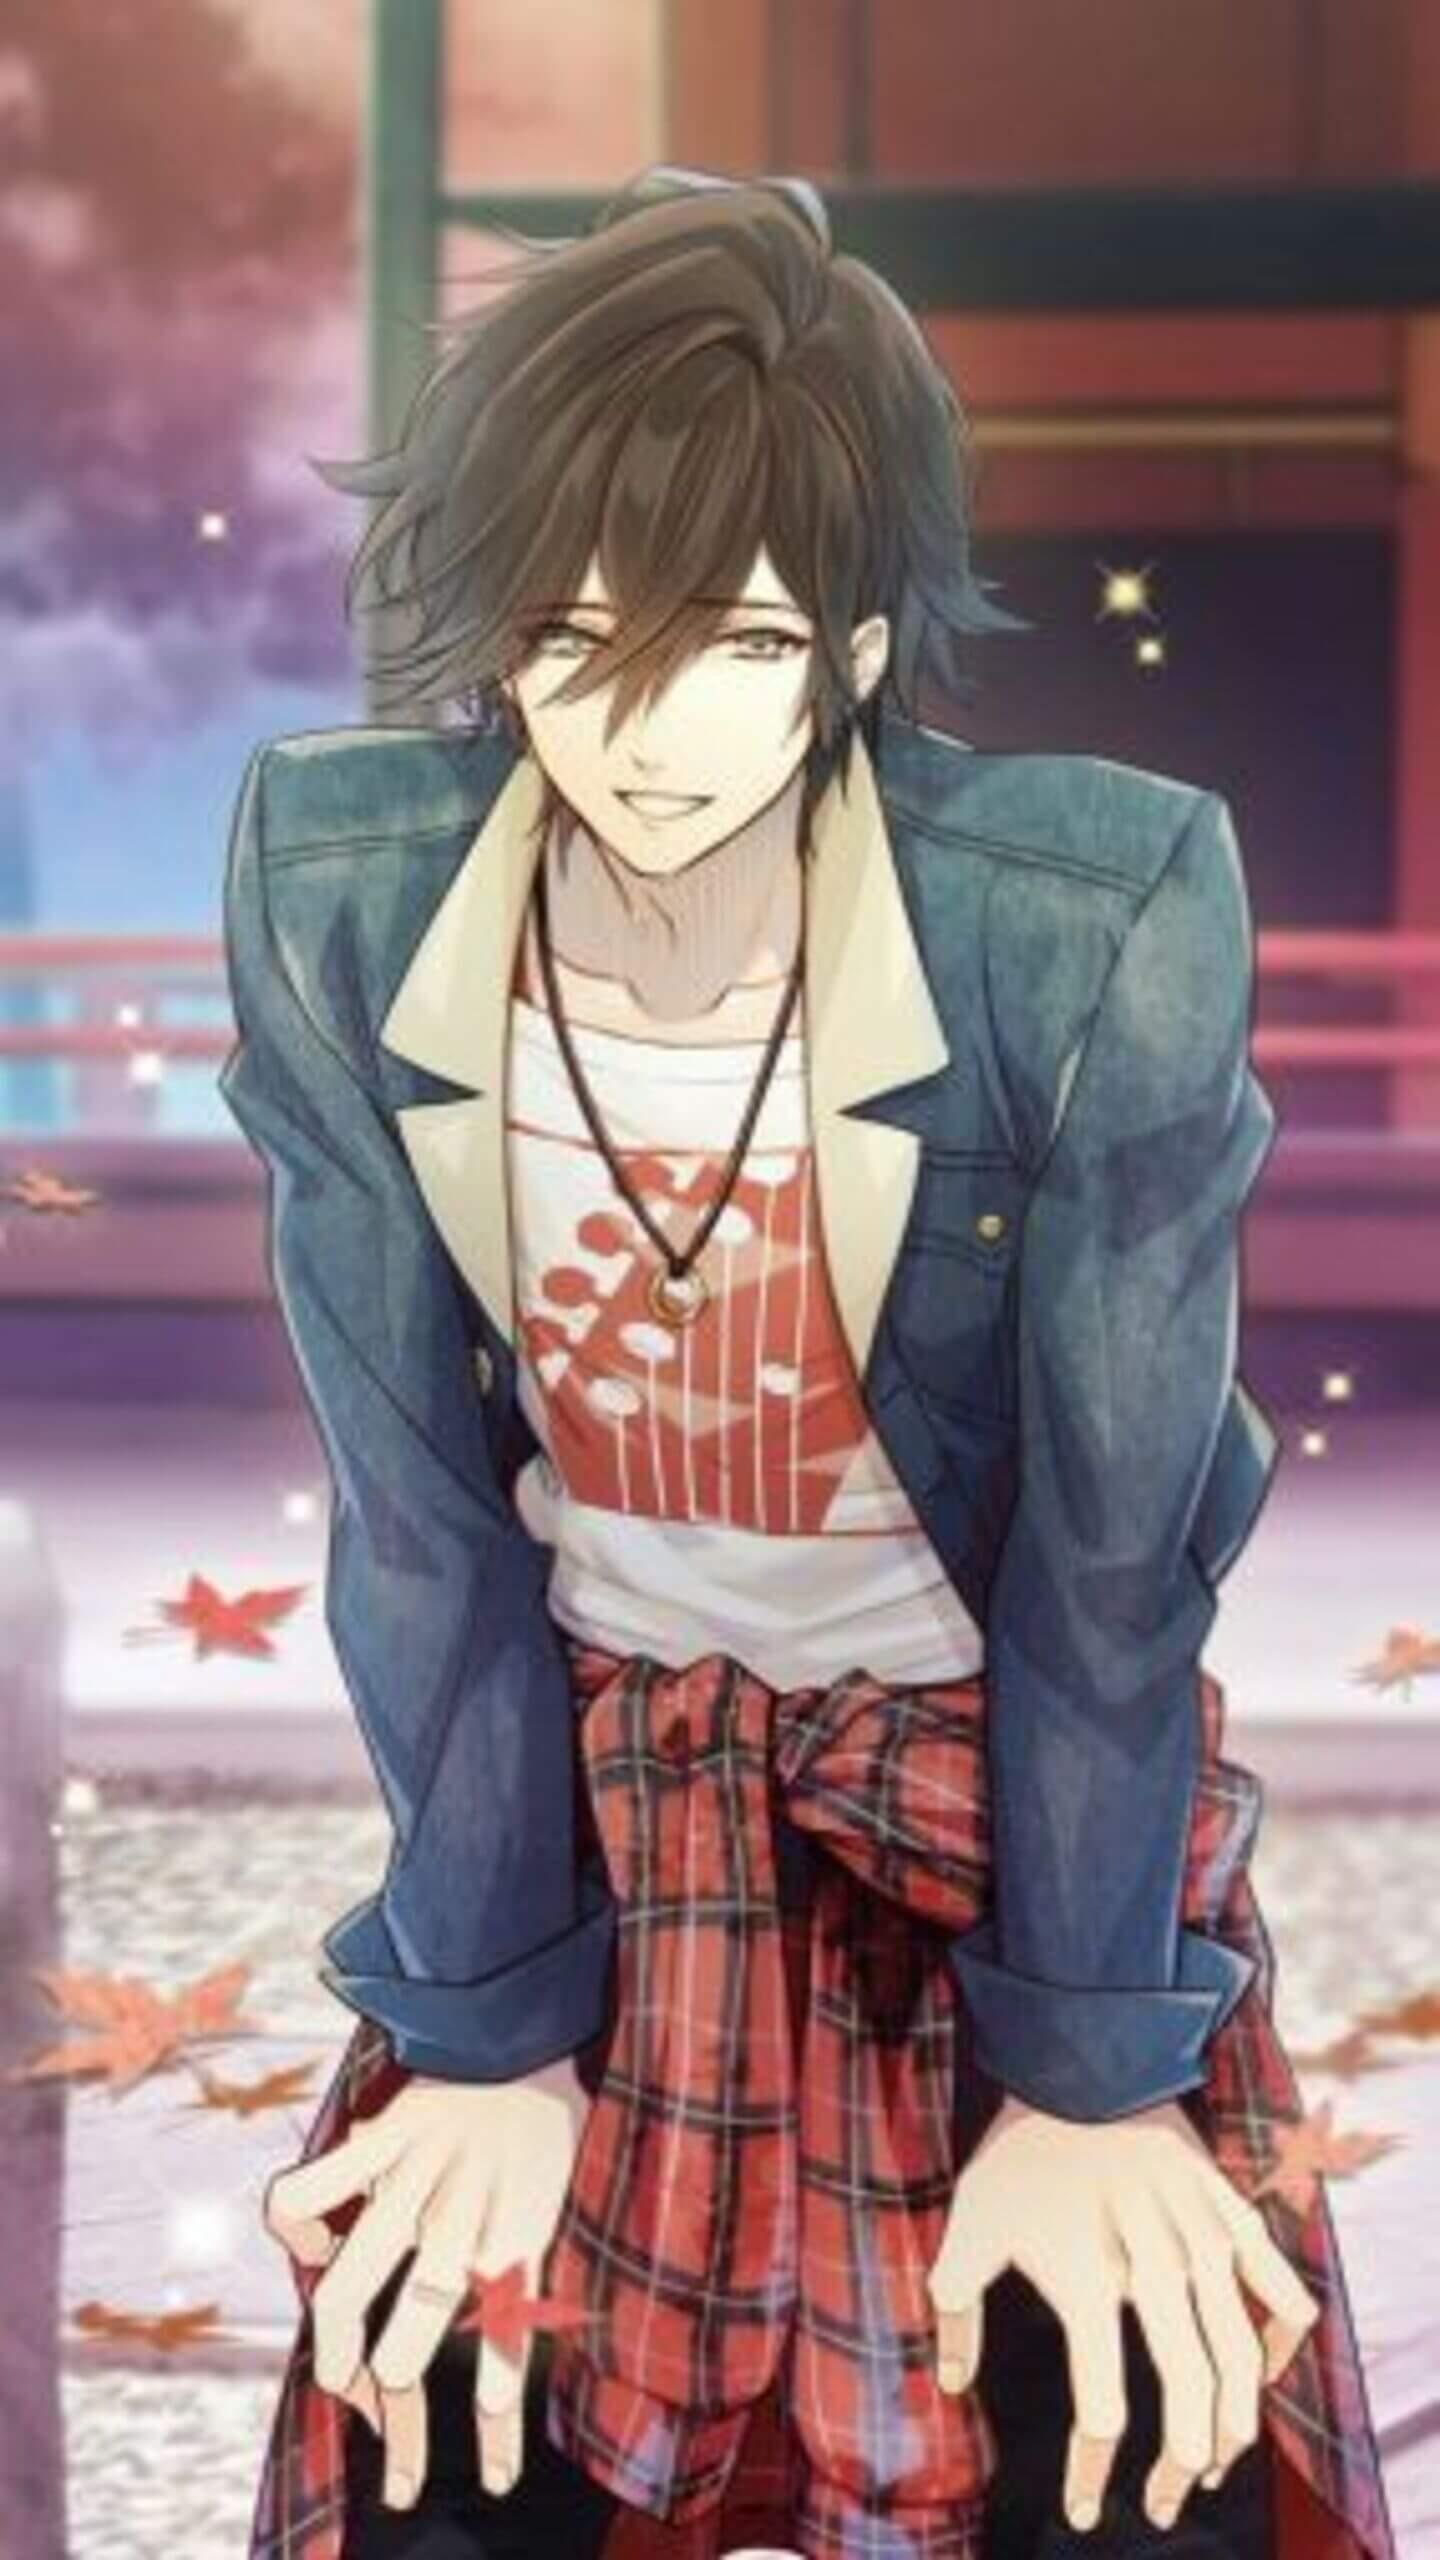 Kawaii Anime Boy Wallpapers for Android - APK Download